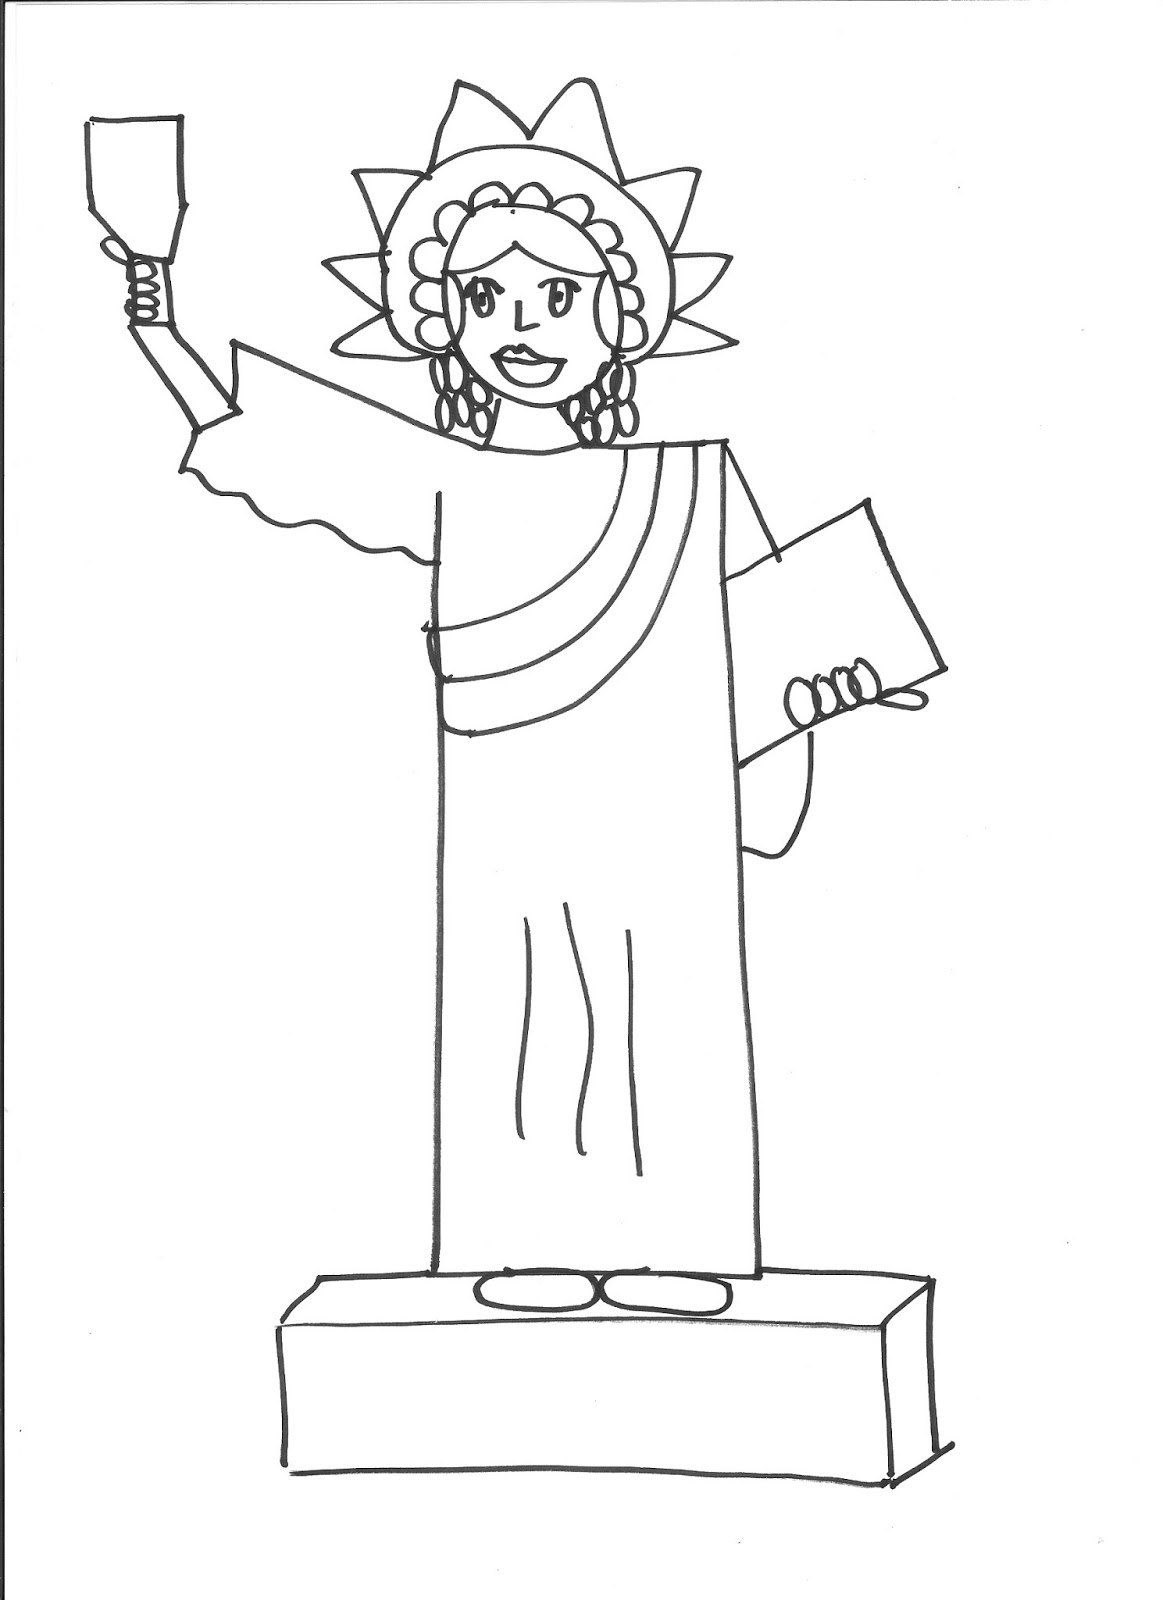 statue of liberty drawing step for step how to draw the statue of liberty step by step arcmelcom for drawing step statue step liberty of